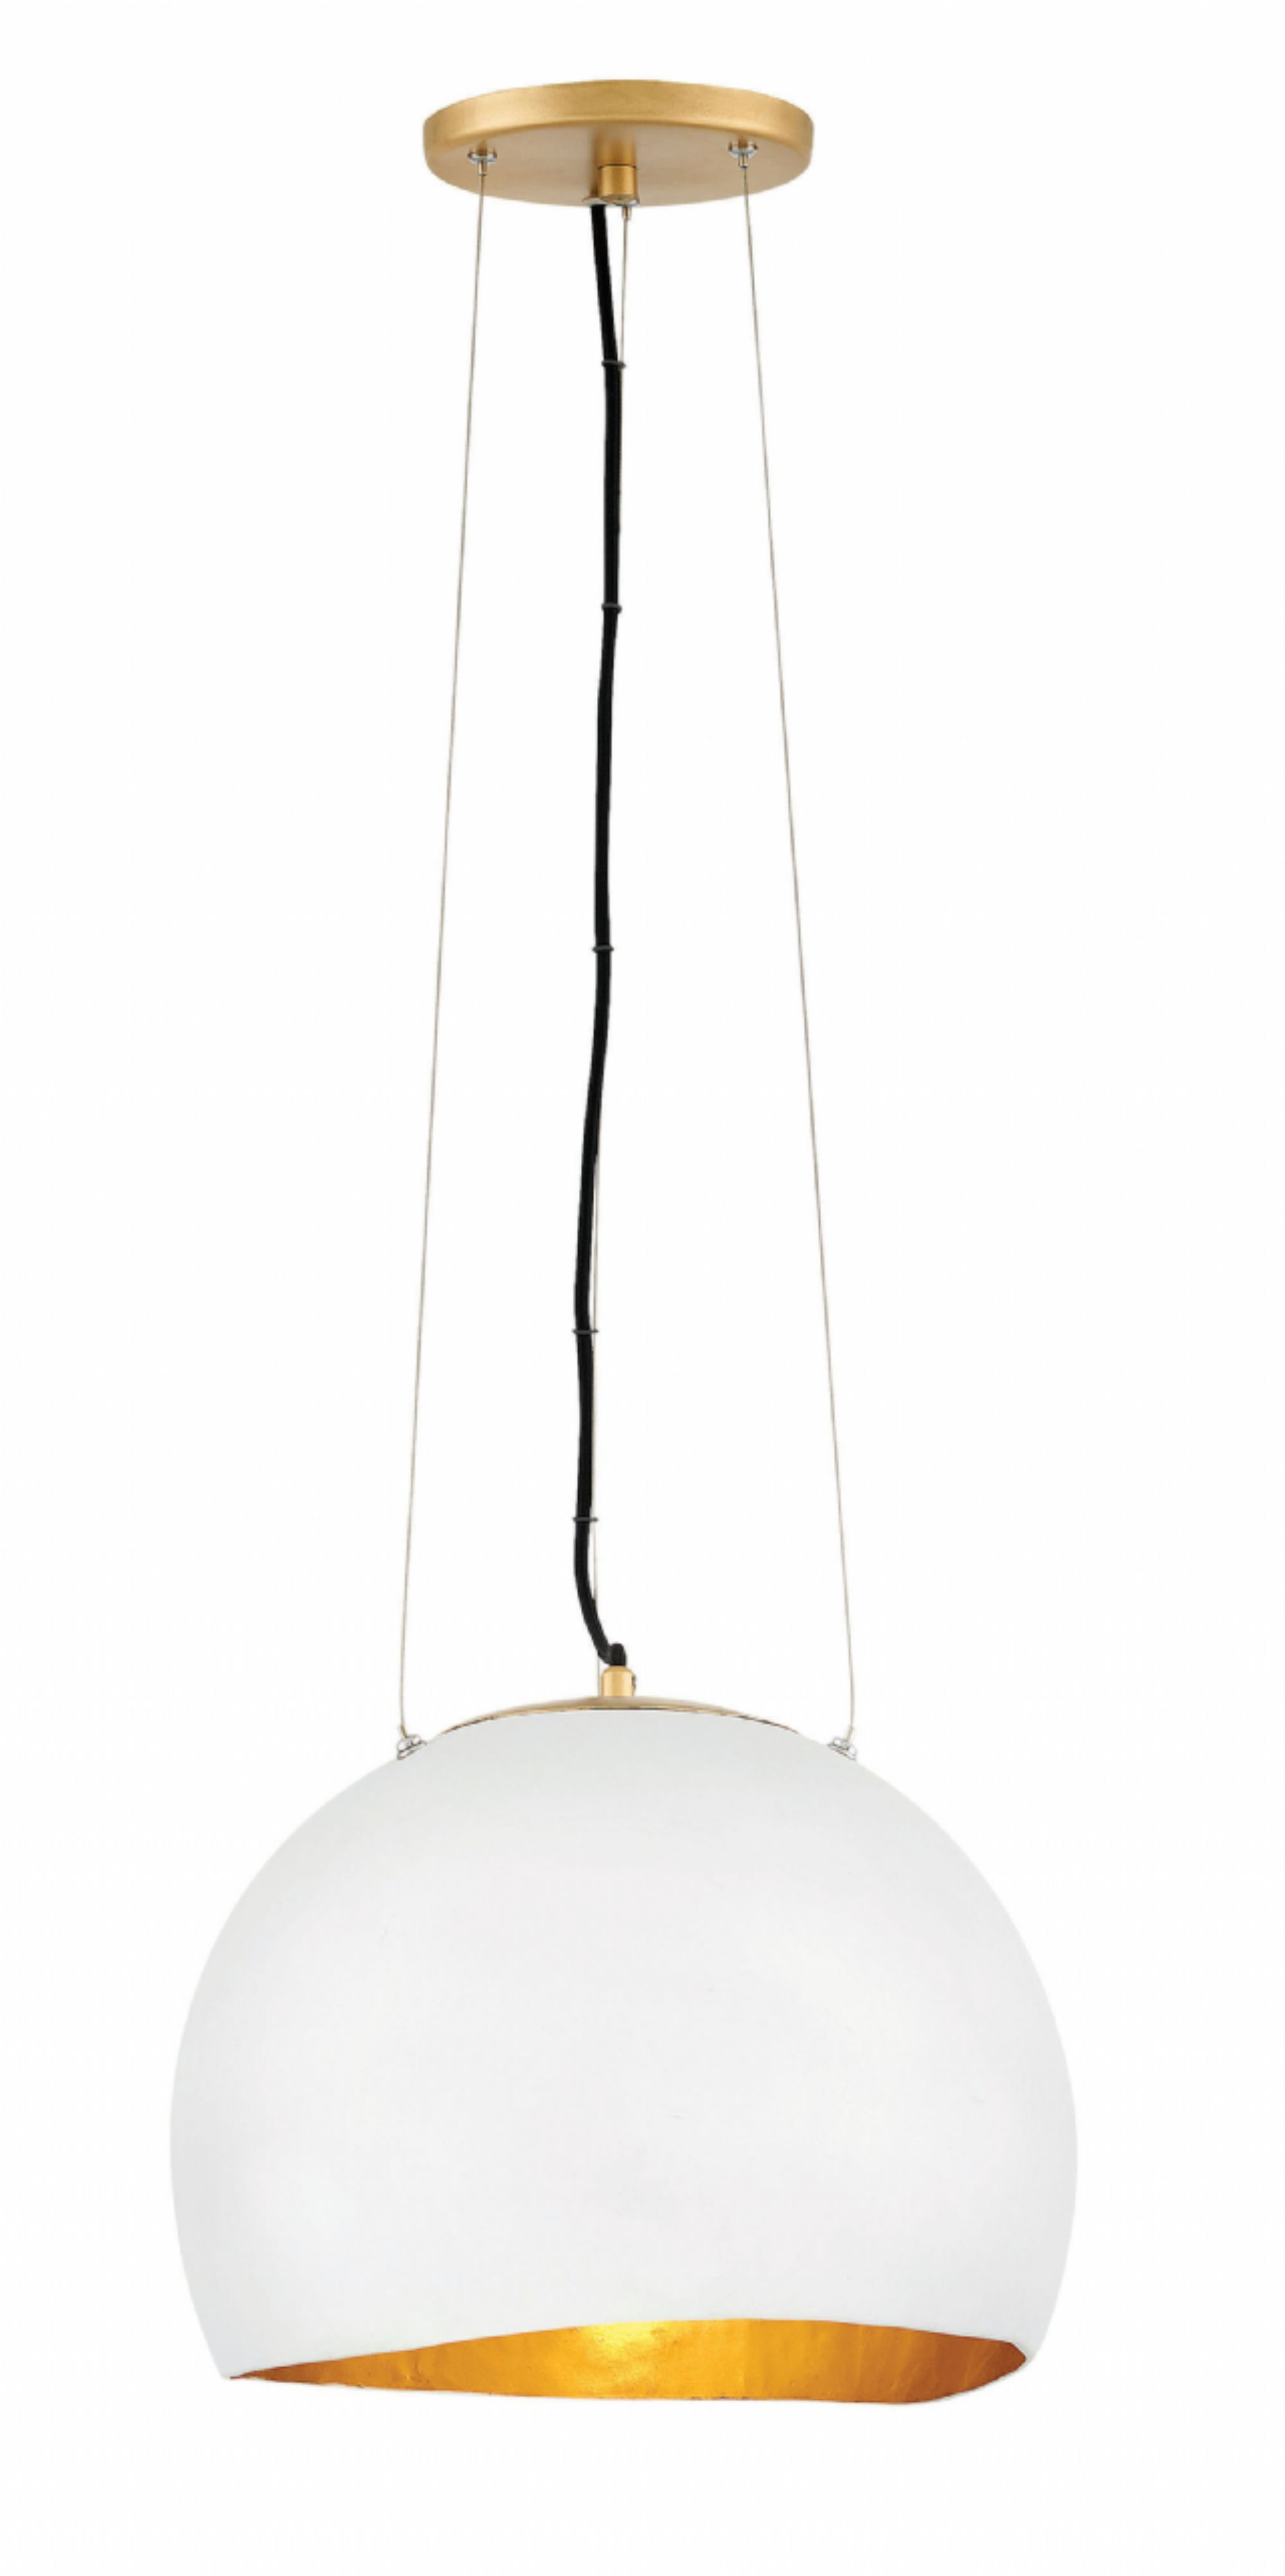 Hinkley Lighting Carries Many Shell White Nula Interior Hanging Light Fixtures That Can Be Used To